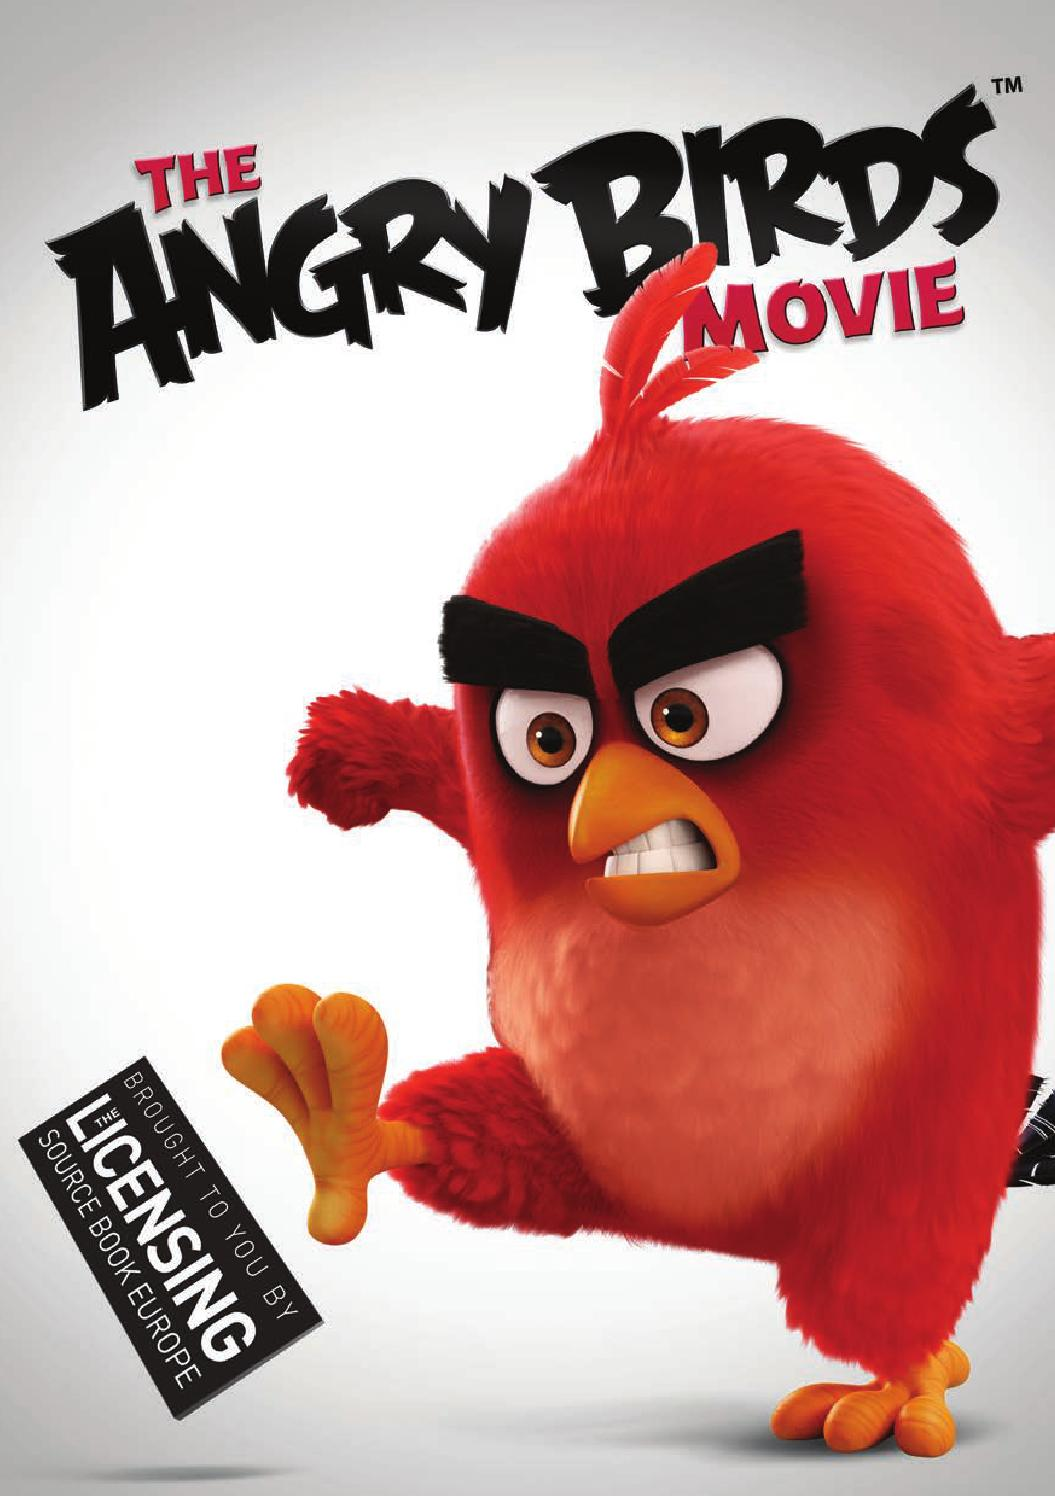 Angry Birds Movie Supplement 2015 by Max Publishing - issuu